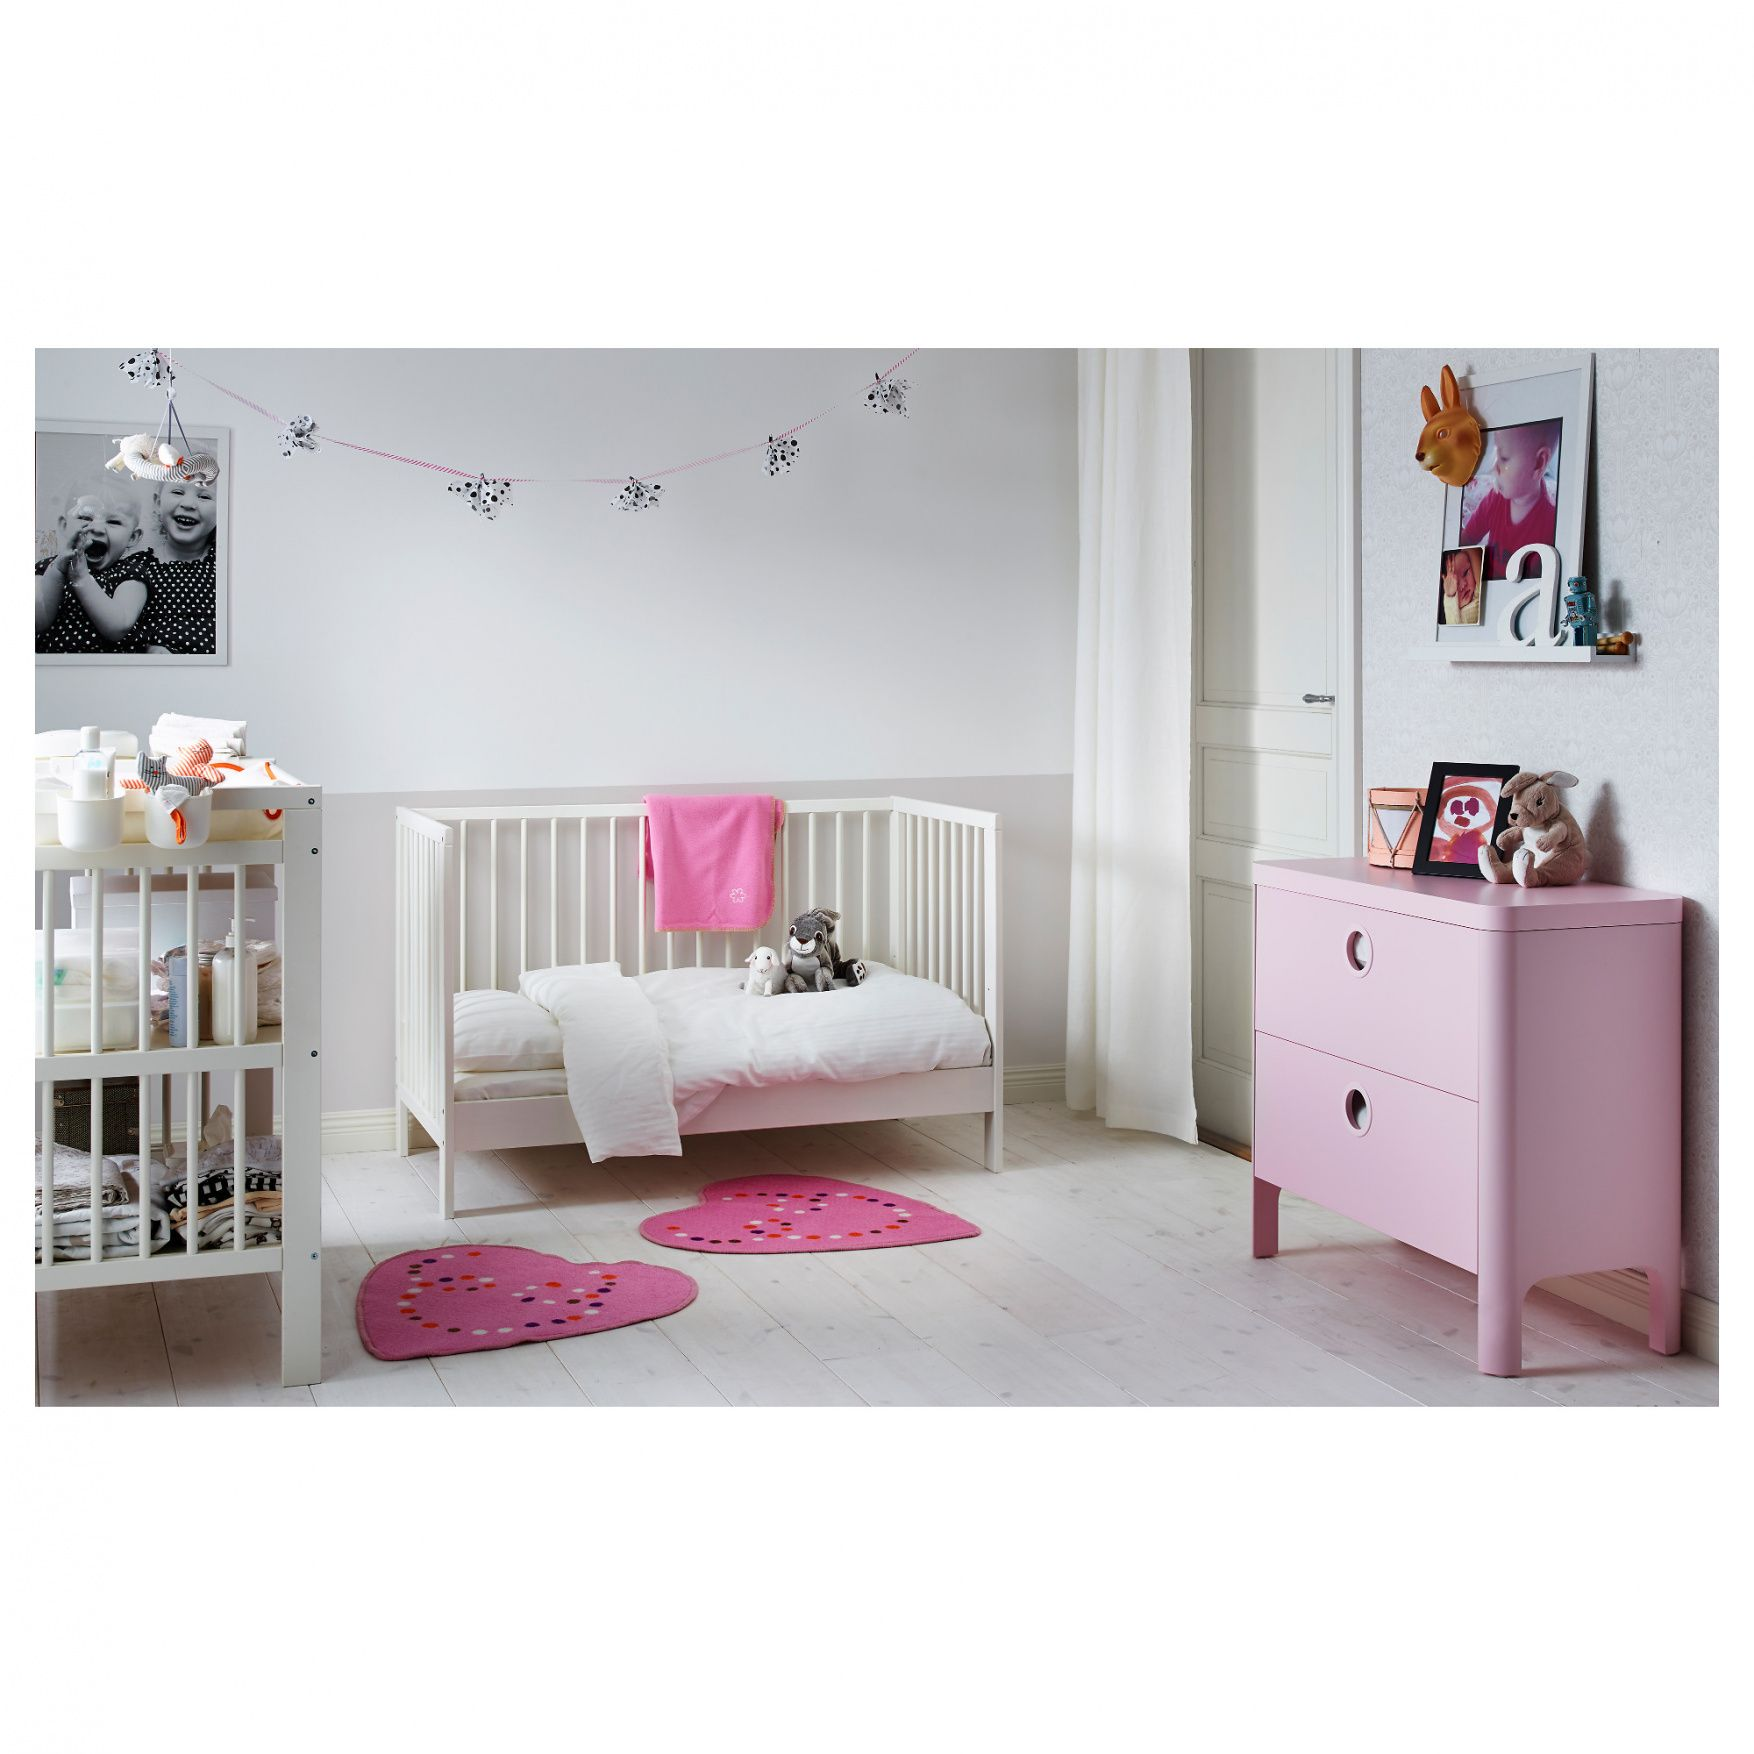 basket bed sniglar gallery nod instructions changer baby combo convertible mini table toddler of with the ideas curtain changing ikea cribs storage land under and crib